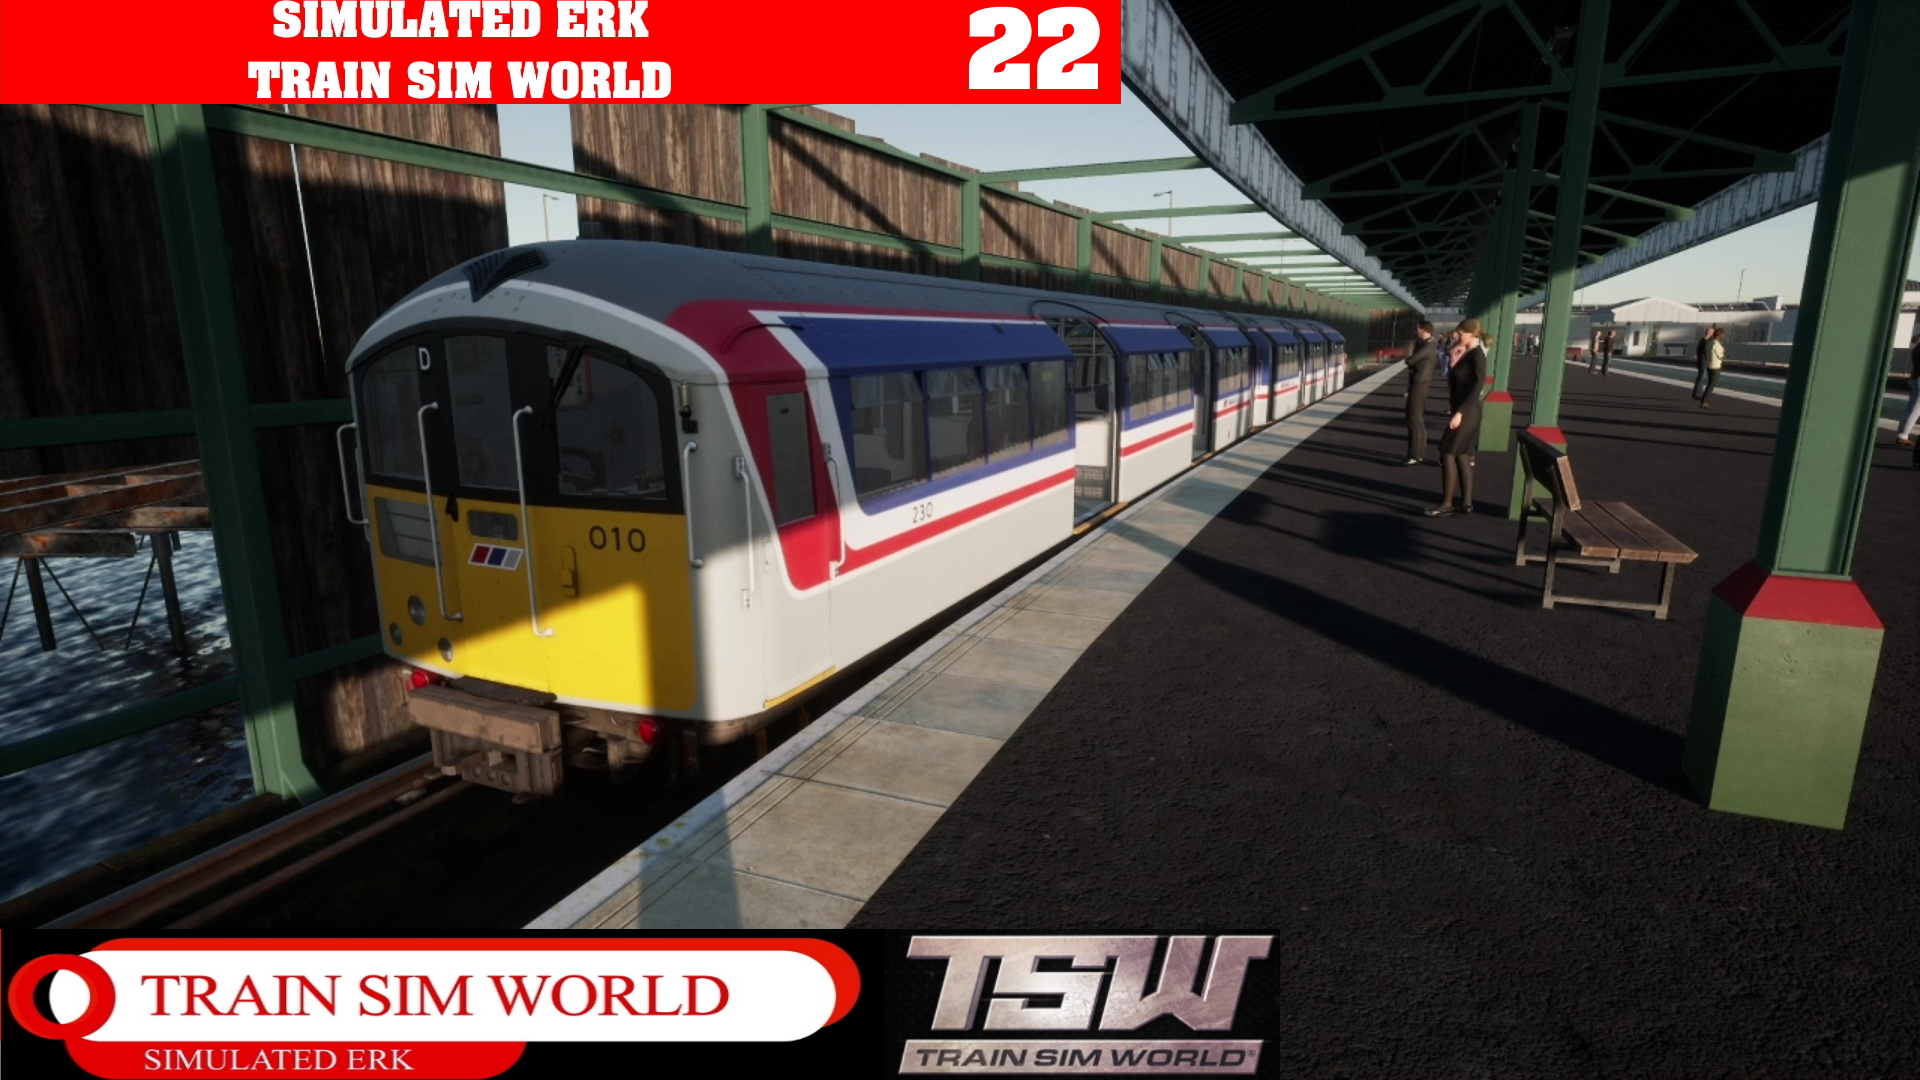 Simulated Erk: Train Sim World episode 22 | Welcome Back To The Isle